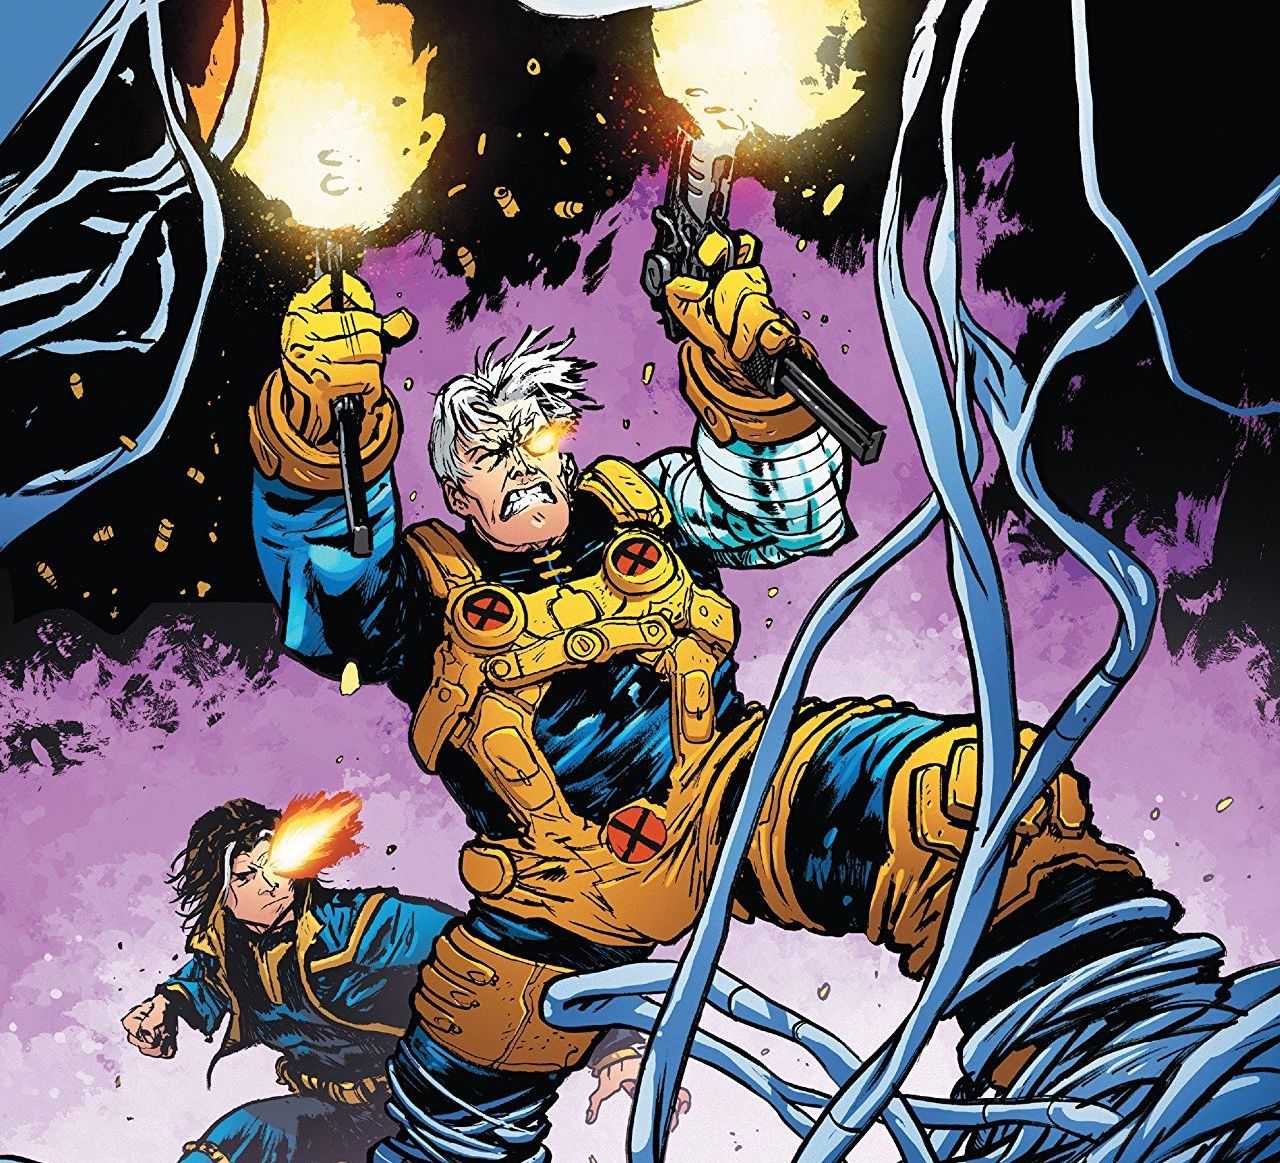 'Cable: Past Fears' Vol. 3 review: Get a slice of each of Cable's lives